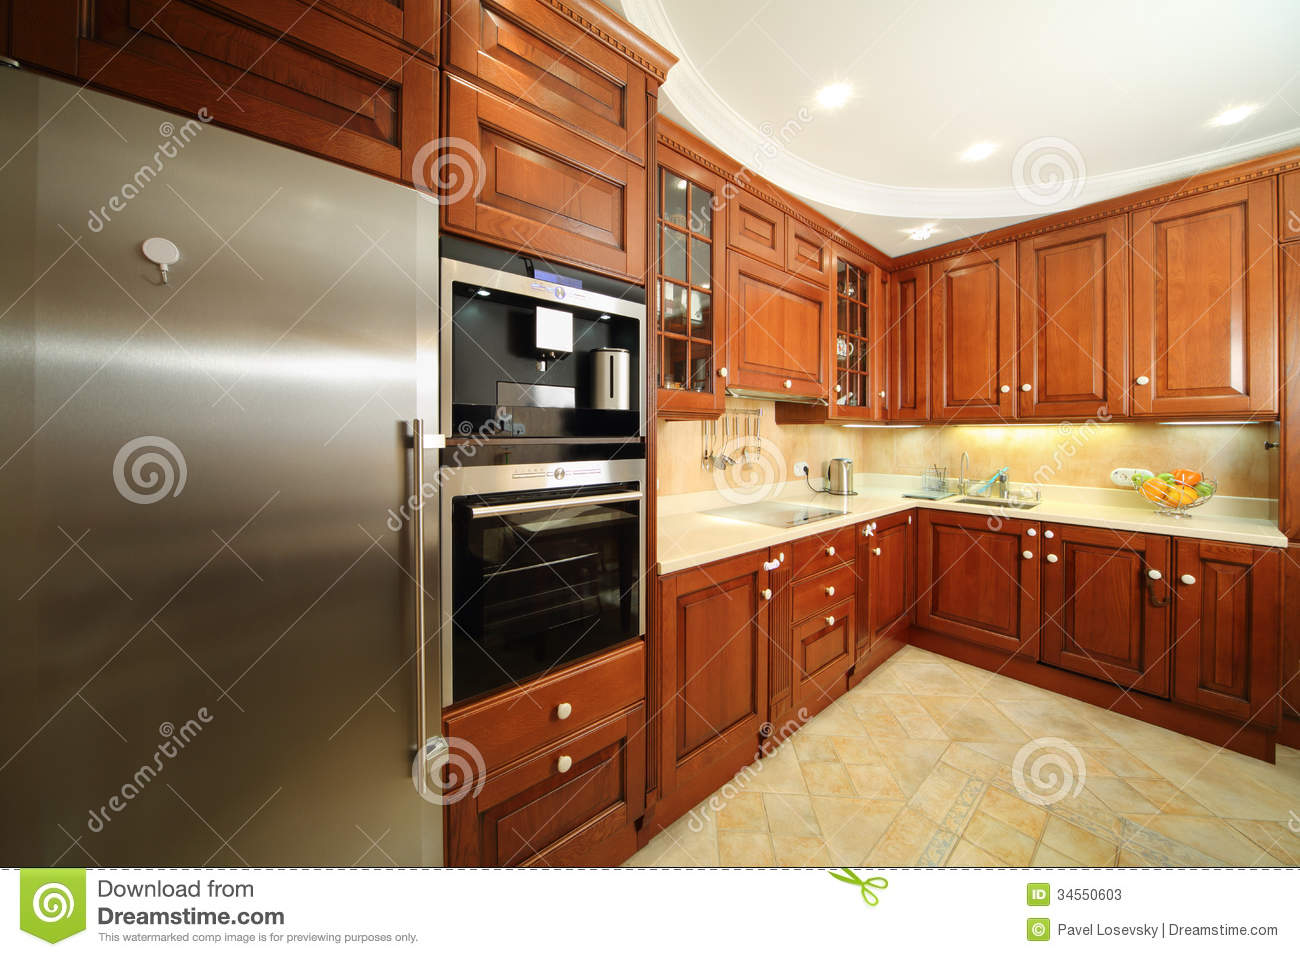 Kitchen Wooden Furniture Light Clean Kitchen With Wooden Furniture Stock Photos Image